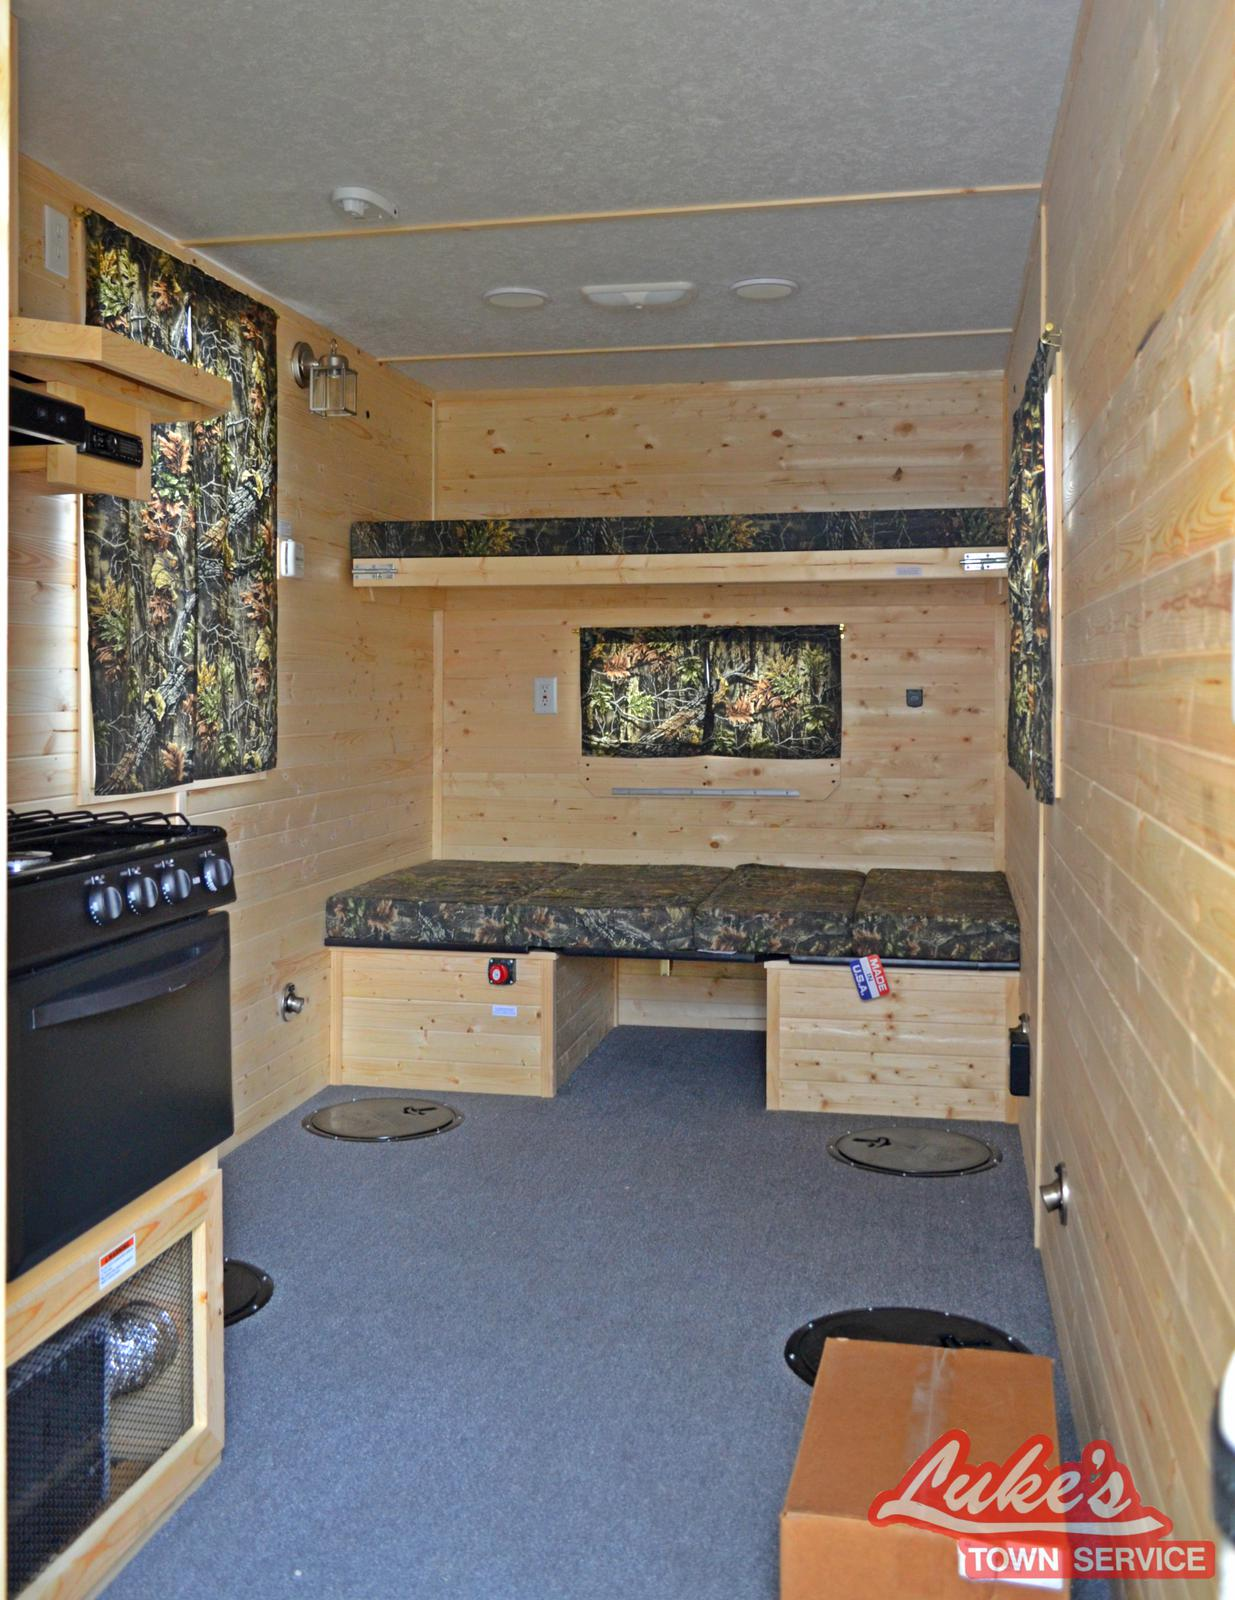 2017 ice castle lake of the woods jr. 6.5' x 14' for sale in elie